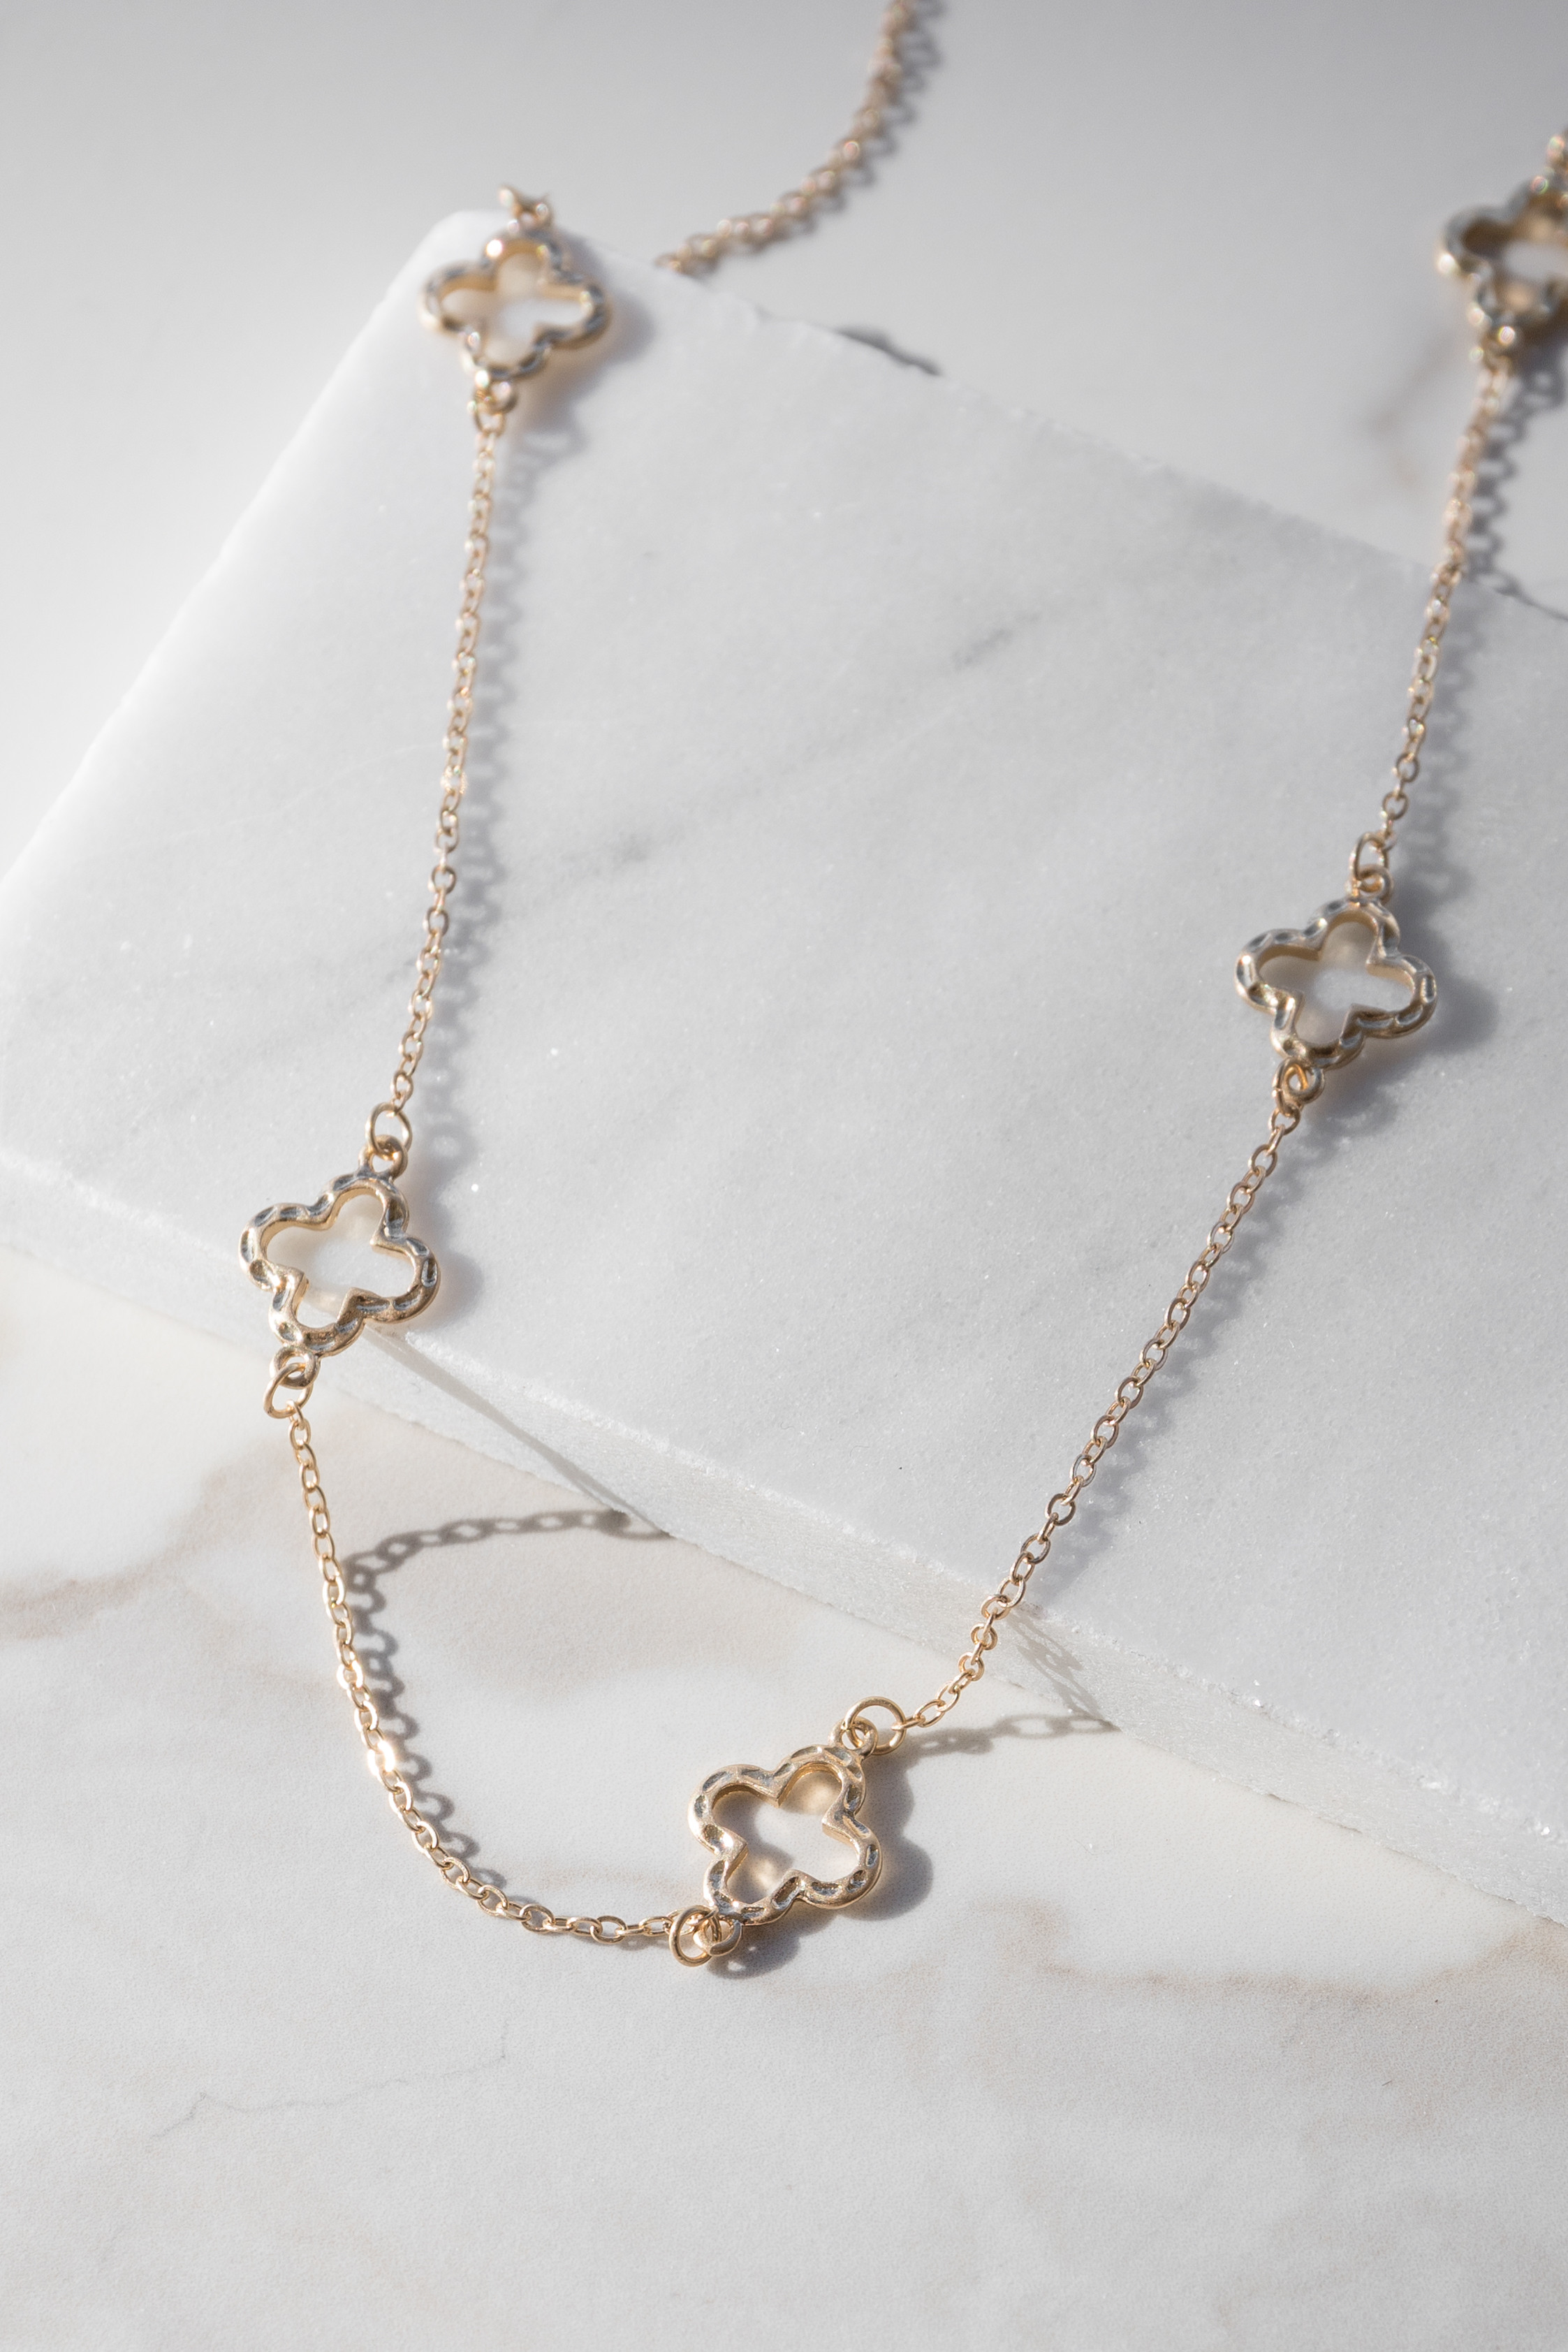 Gold Chain Necklace with Hammered Clover Shaped Details